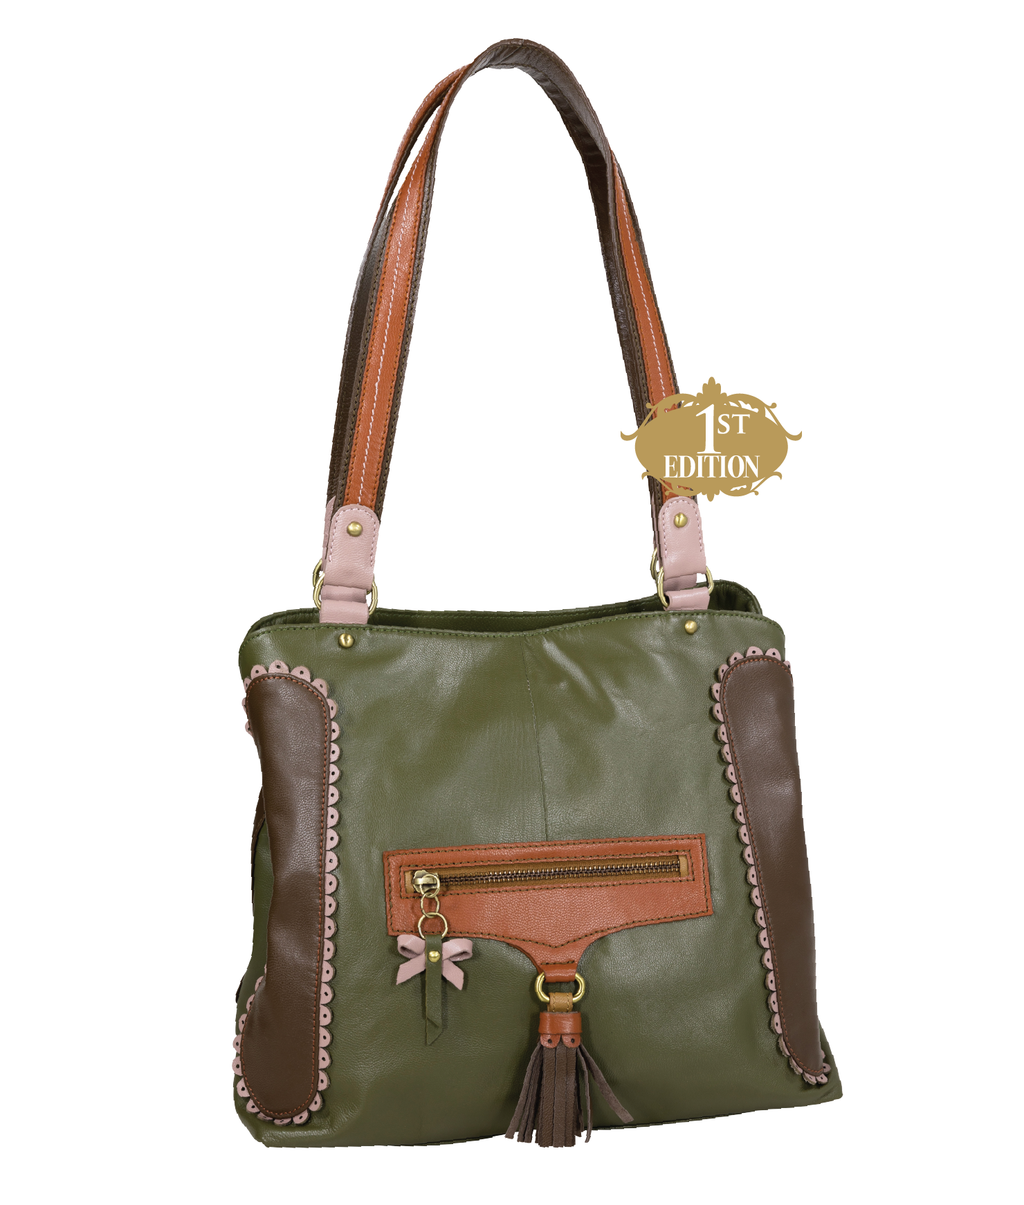 AMELIE Hobo Bag - Boheme - 1st Edition